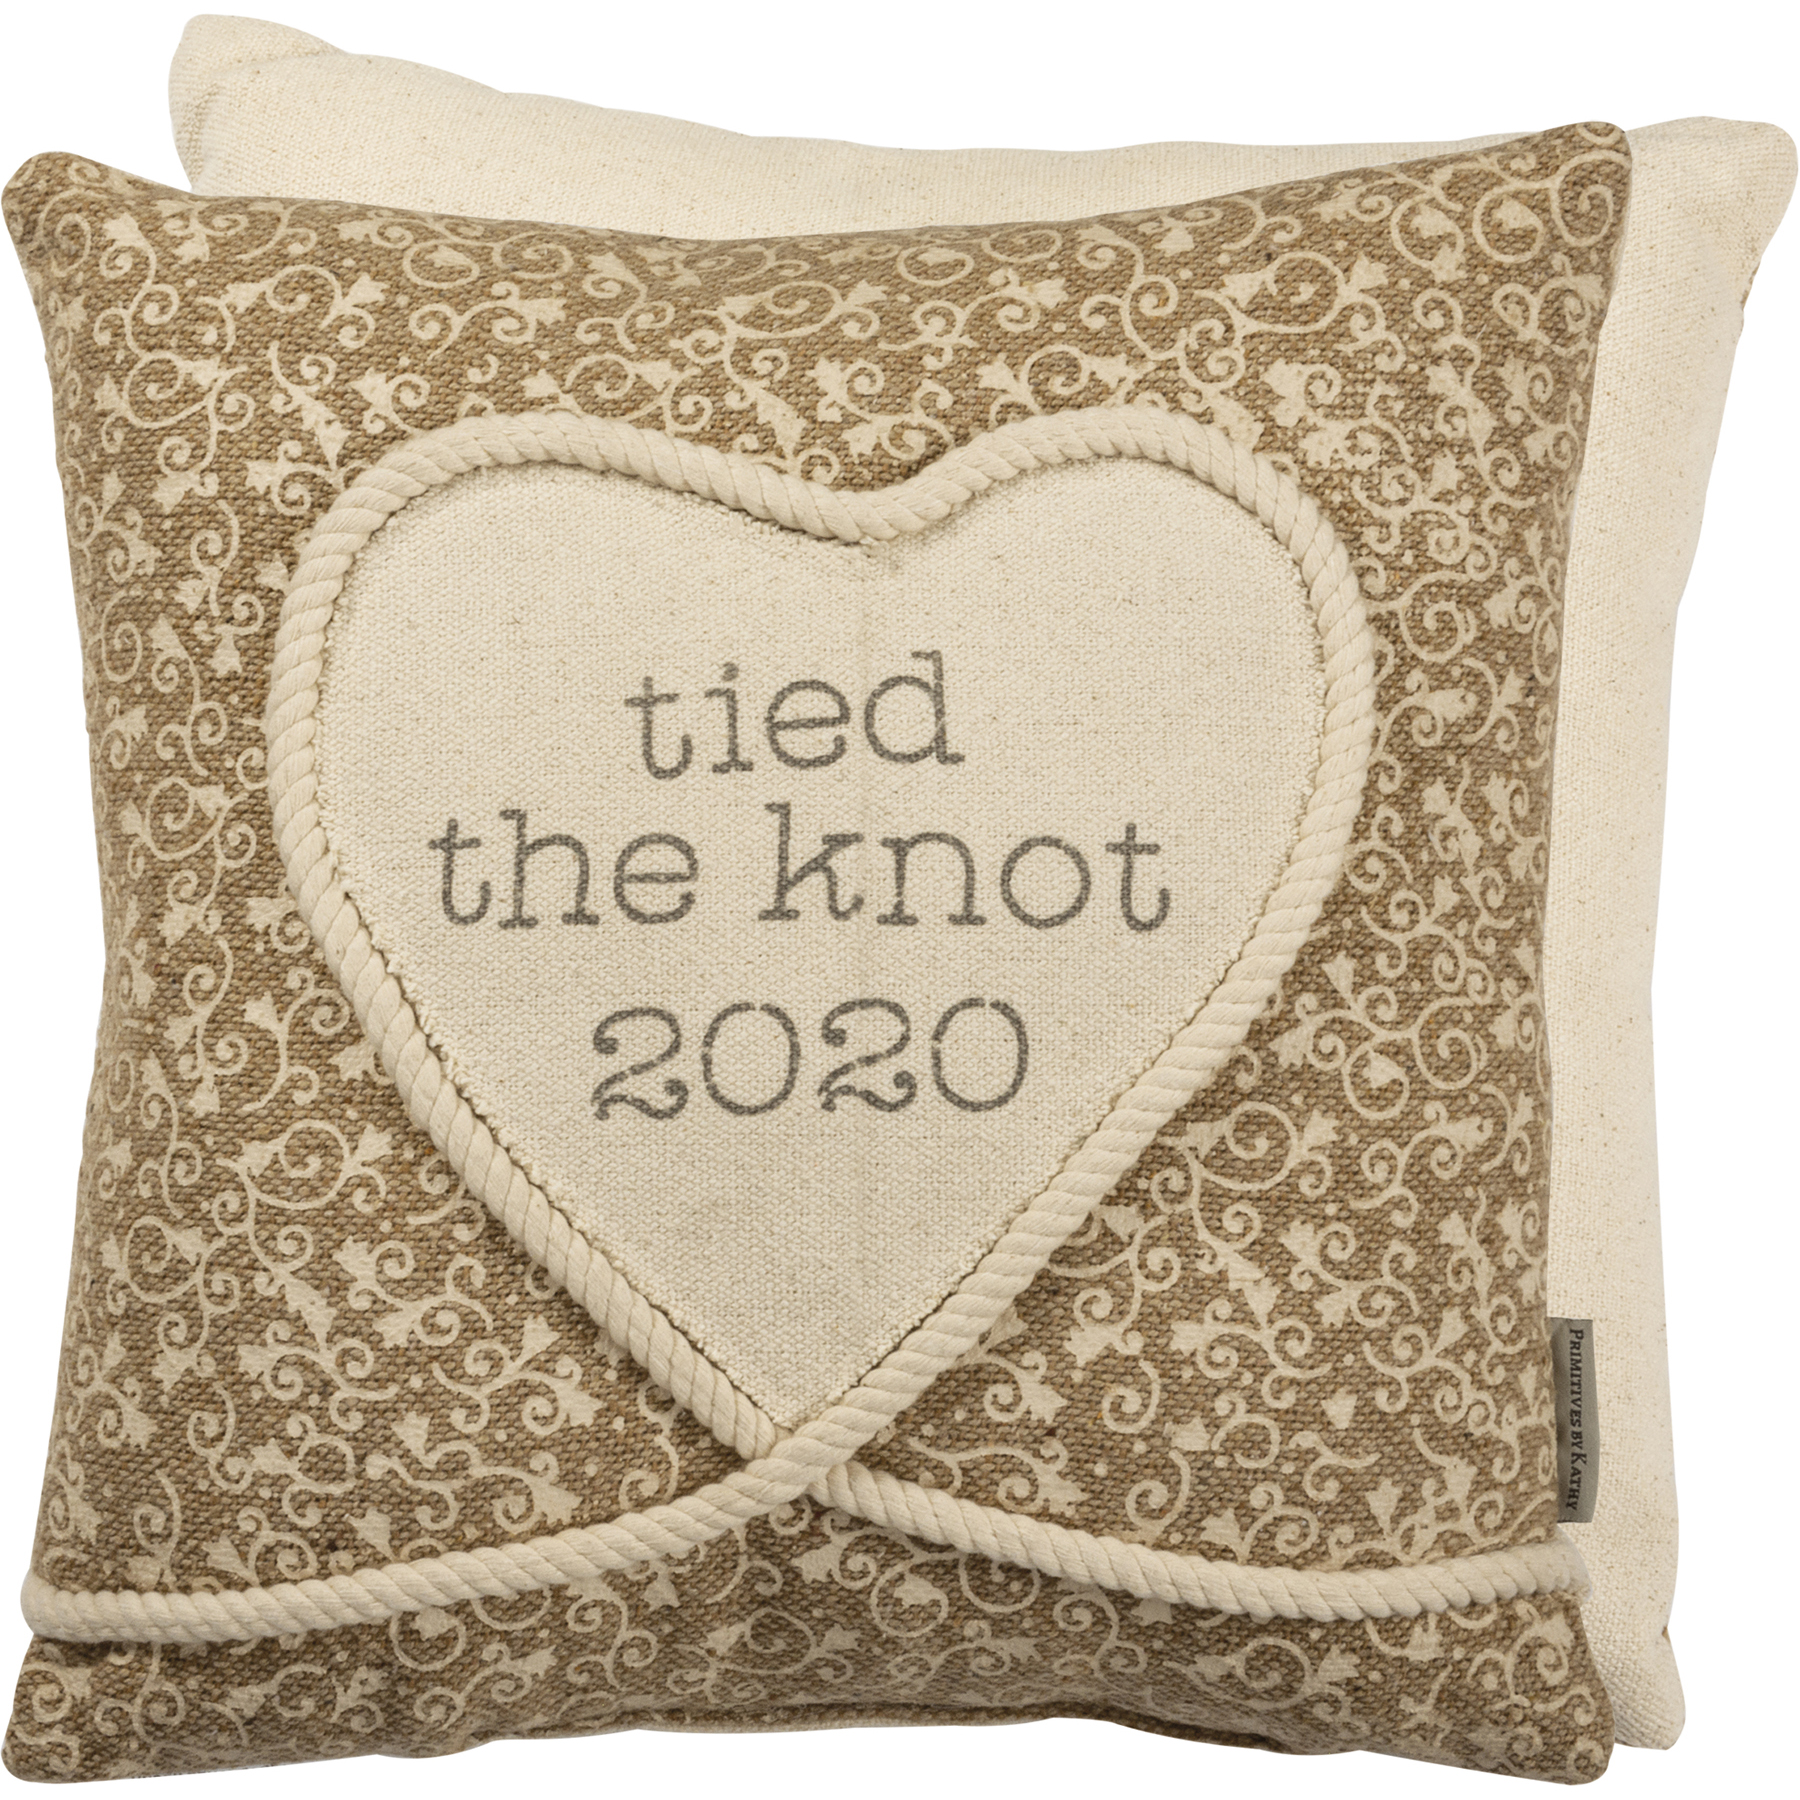 Pillow Tied The Knot 2020 Wedding Collection Primitives By Kathy